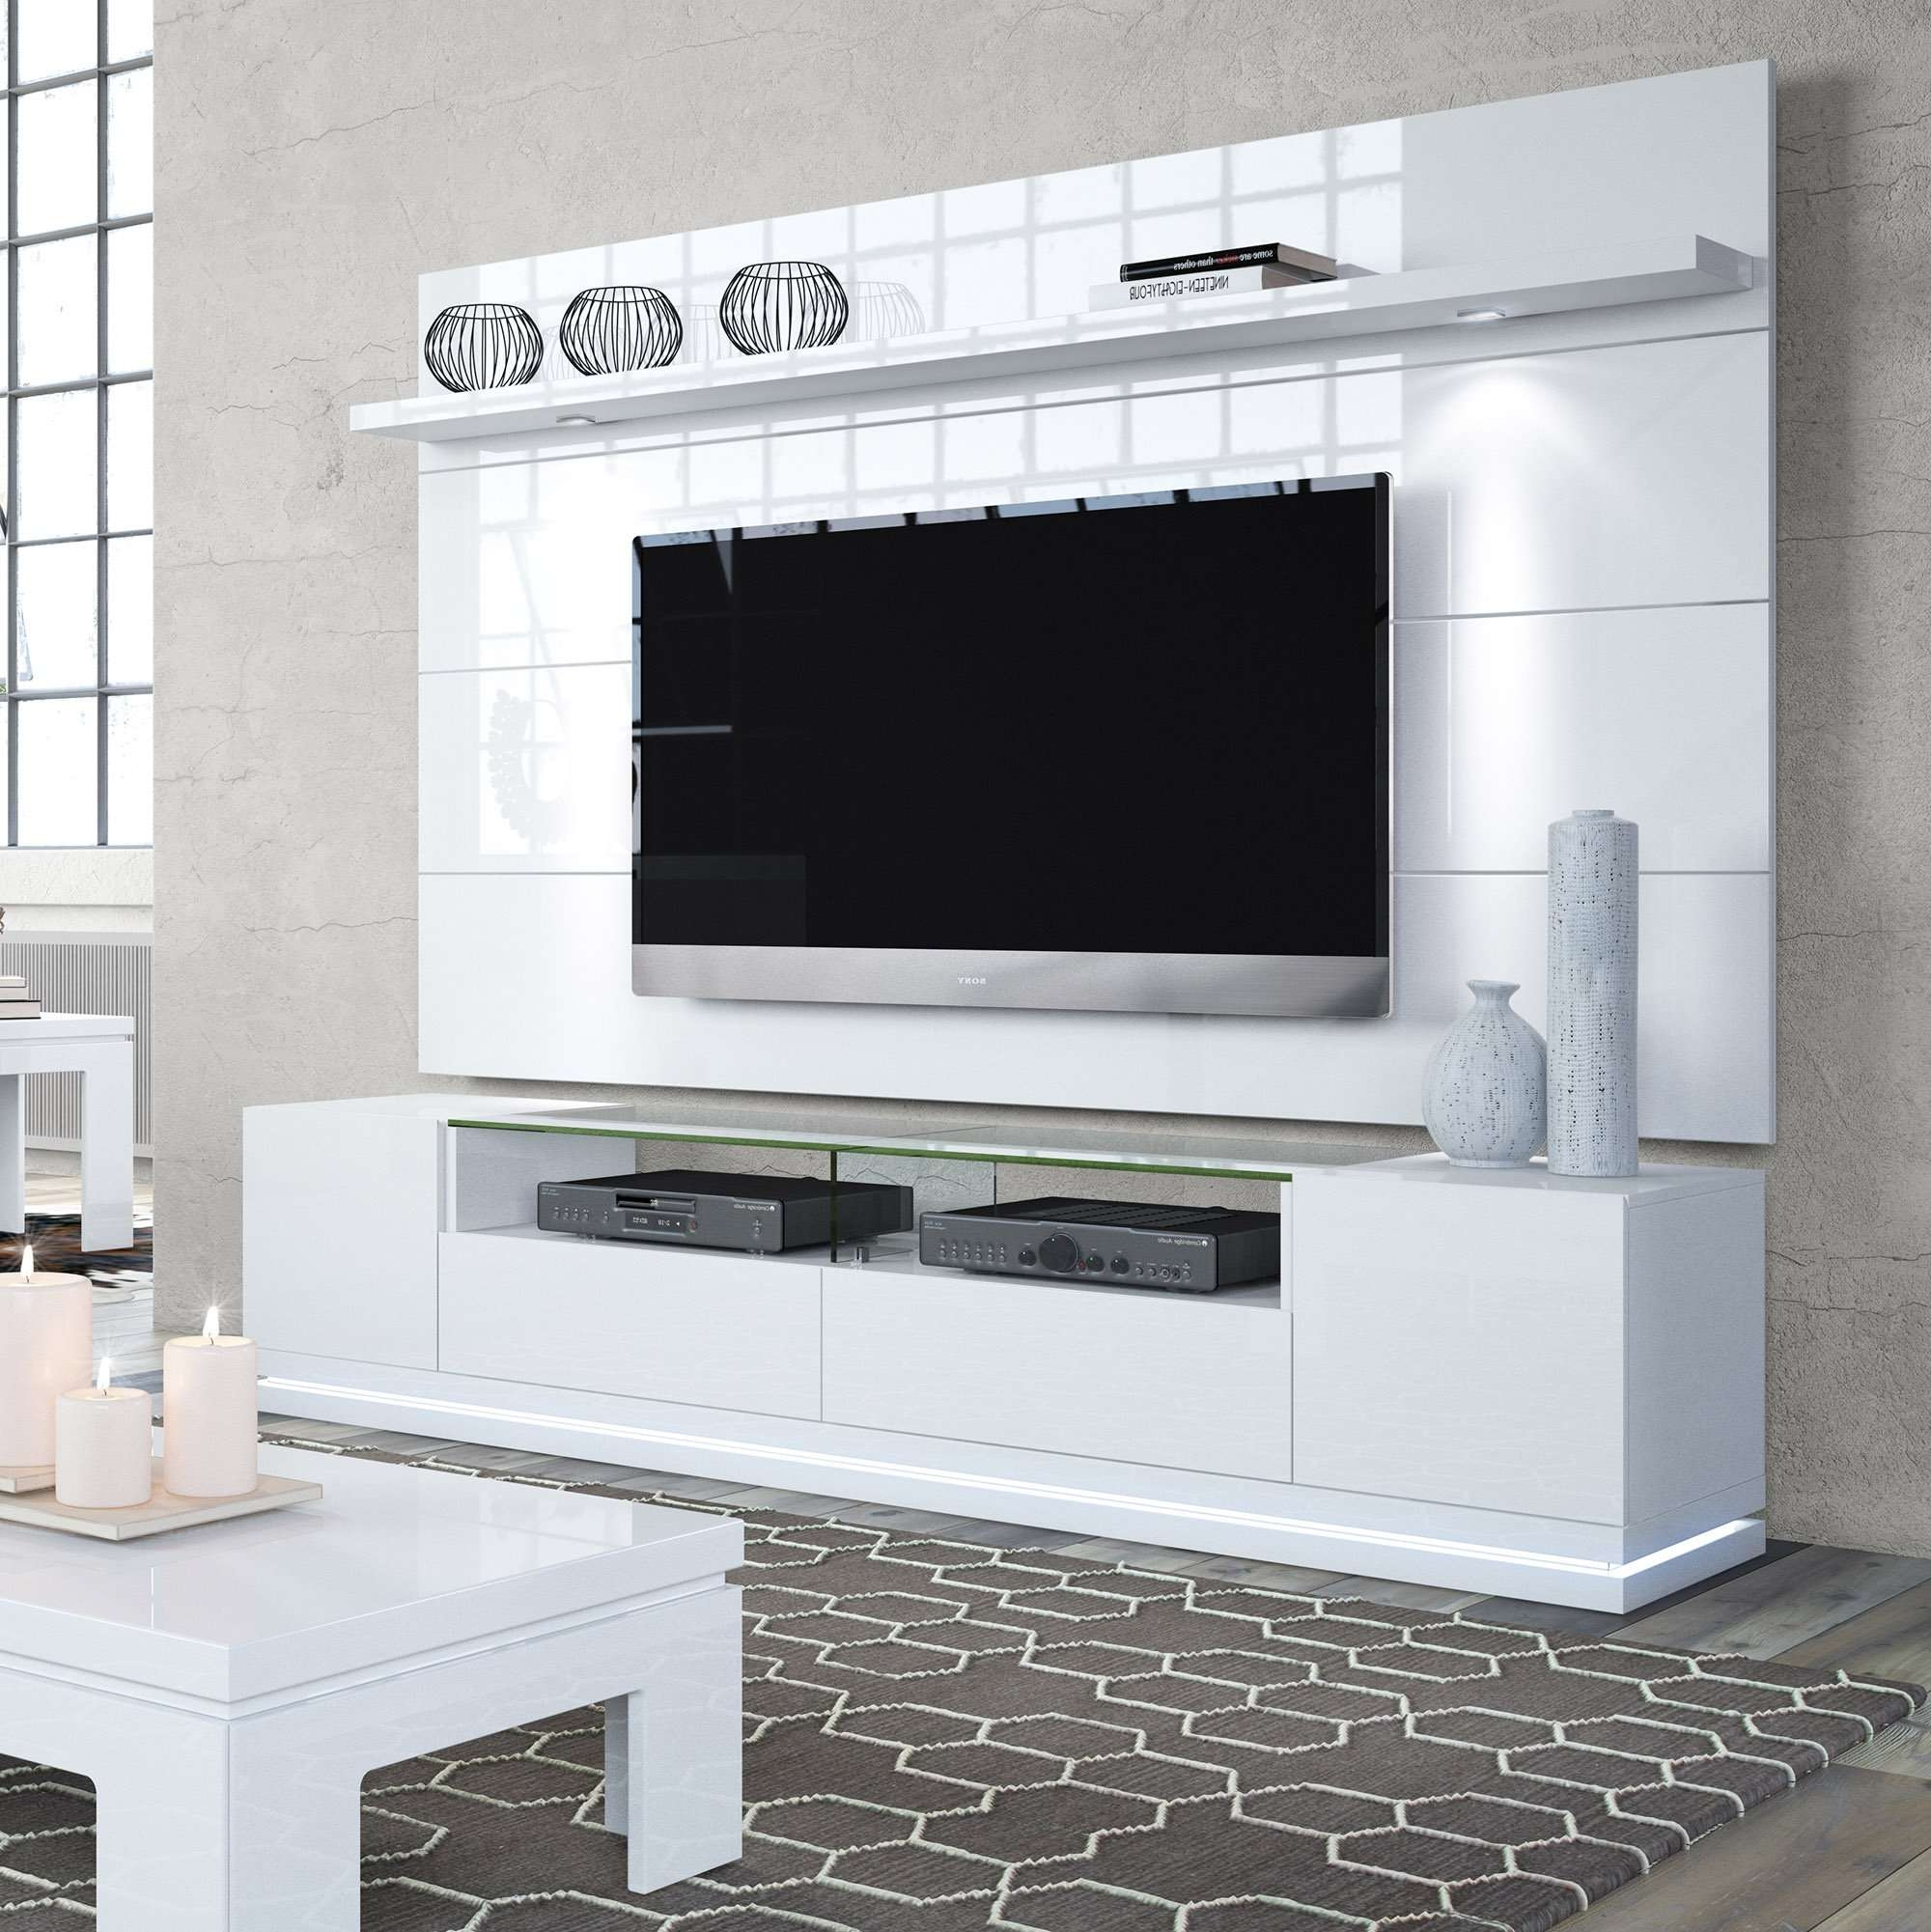 Vanderbilt White Gloss Tv Stand & Cabrini 2.2 Floating Wall Tv Throughout White Gloss Tv Cabinets (Gallery 11 of 20)